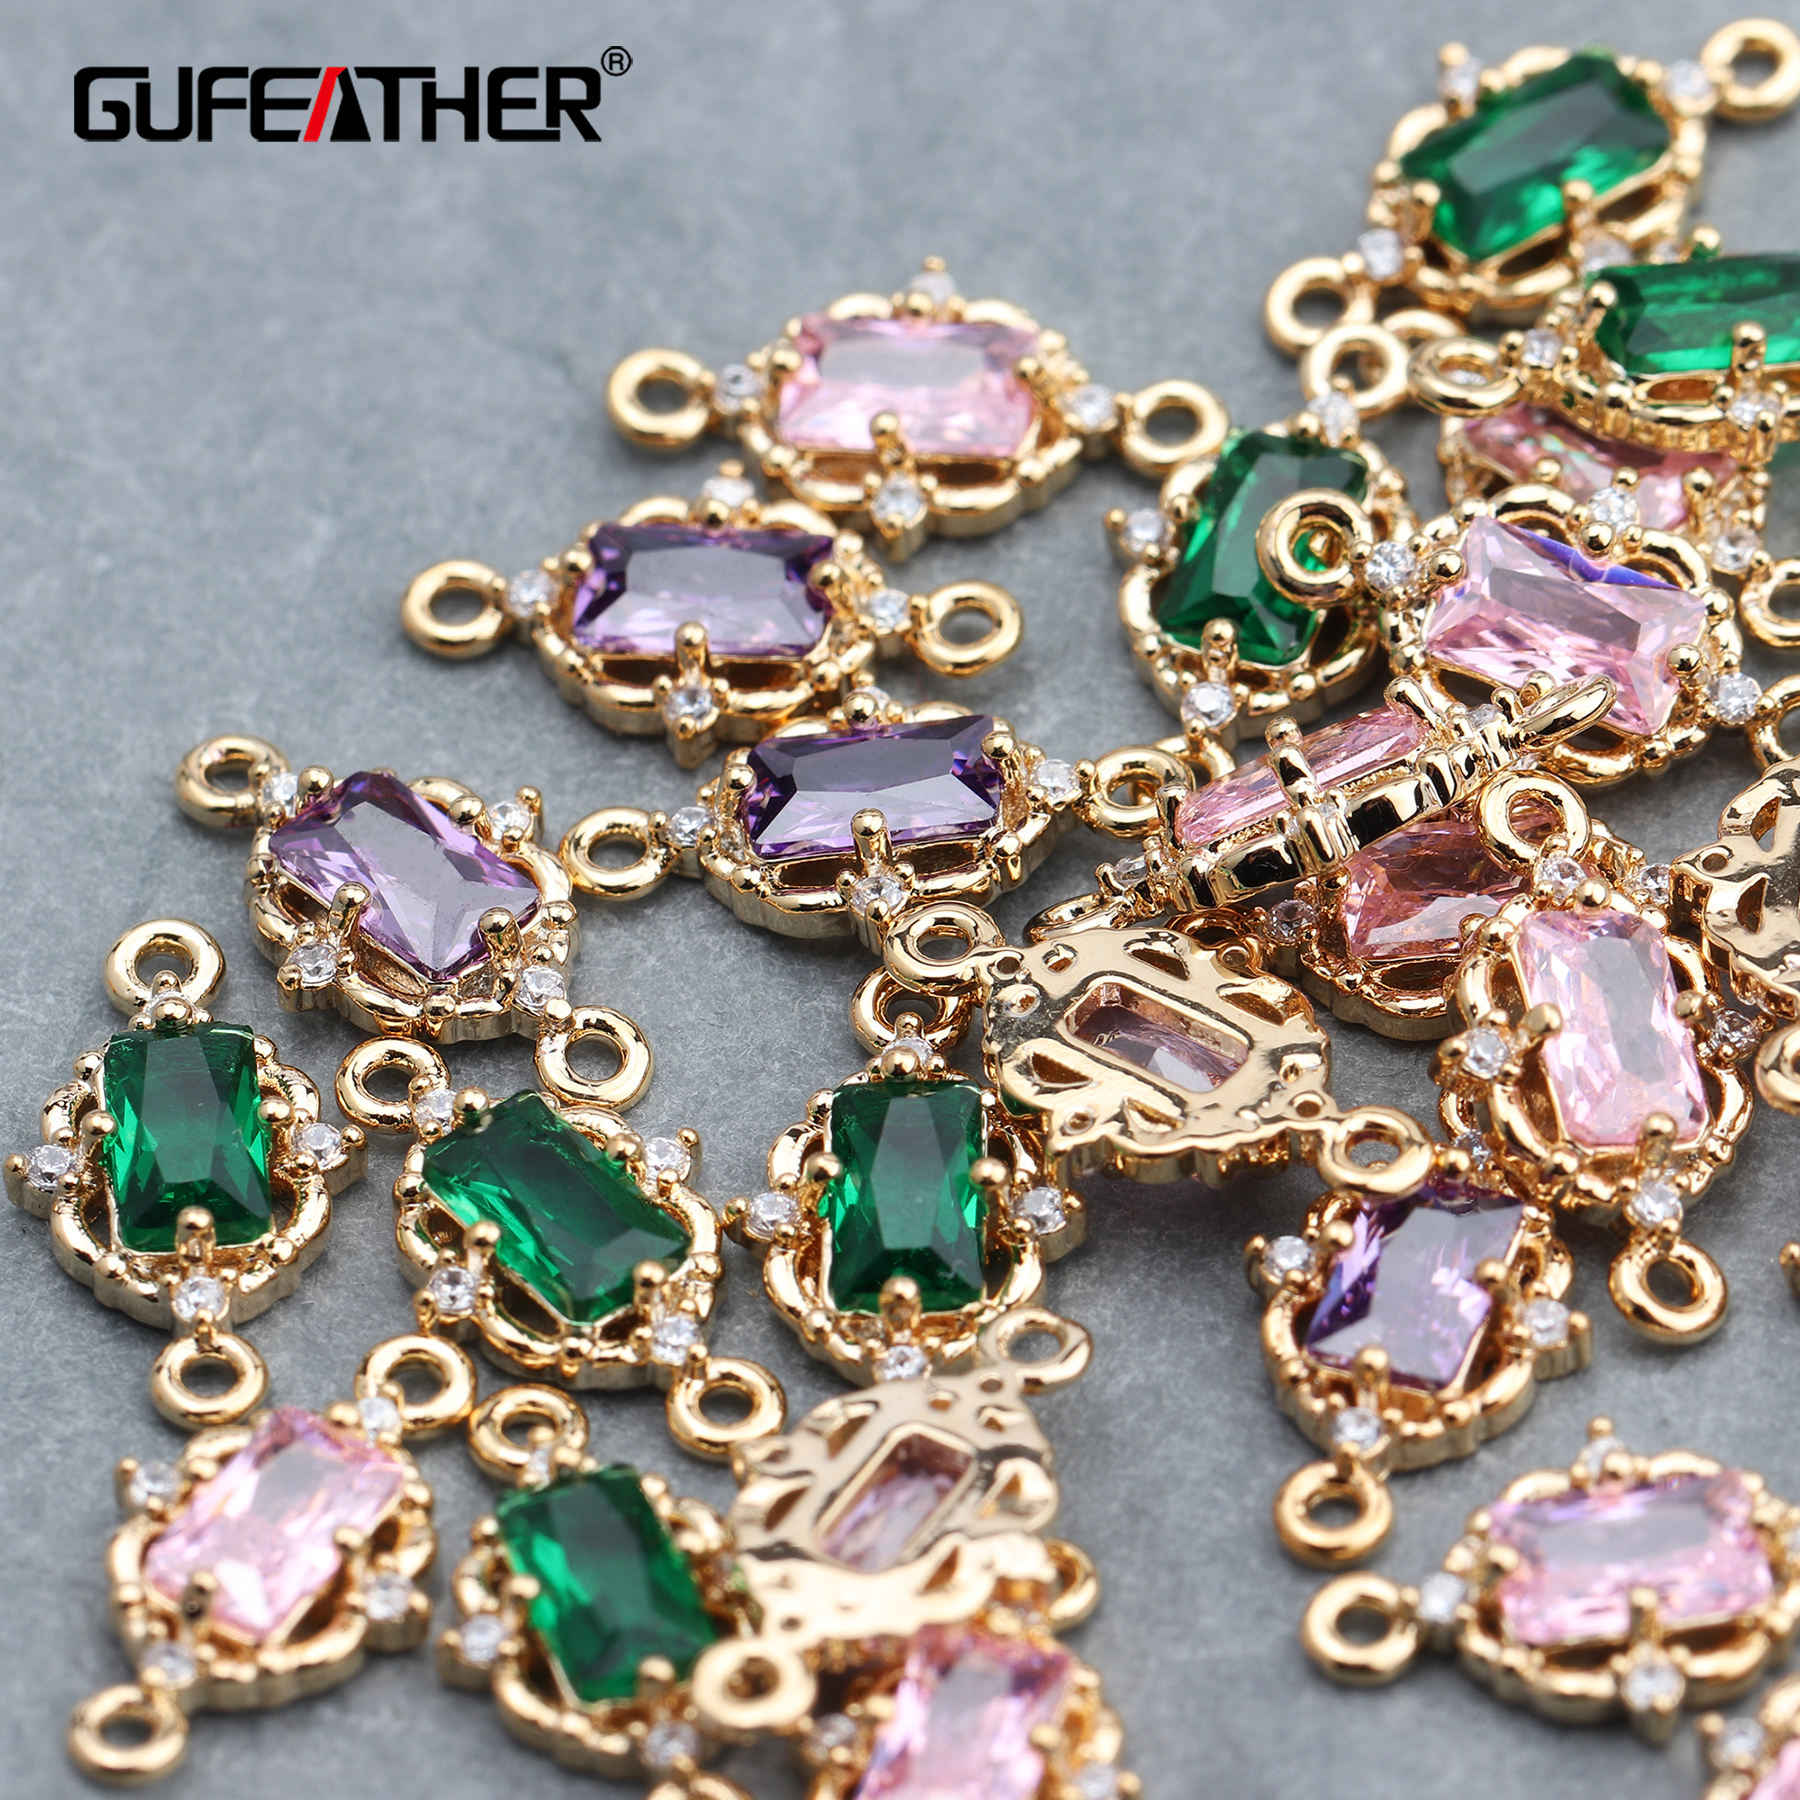 GUFEATHER M617,jewelry Accessories,diy Earring,18k Gold Plated,diy Zircon Pendant,jump Ring,hand Made,jewelry Making,10pcs/lot